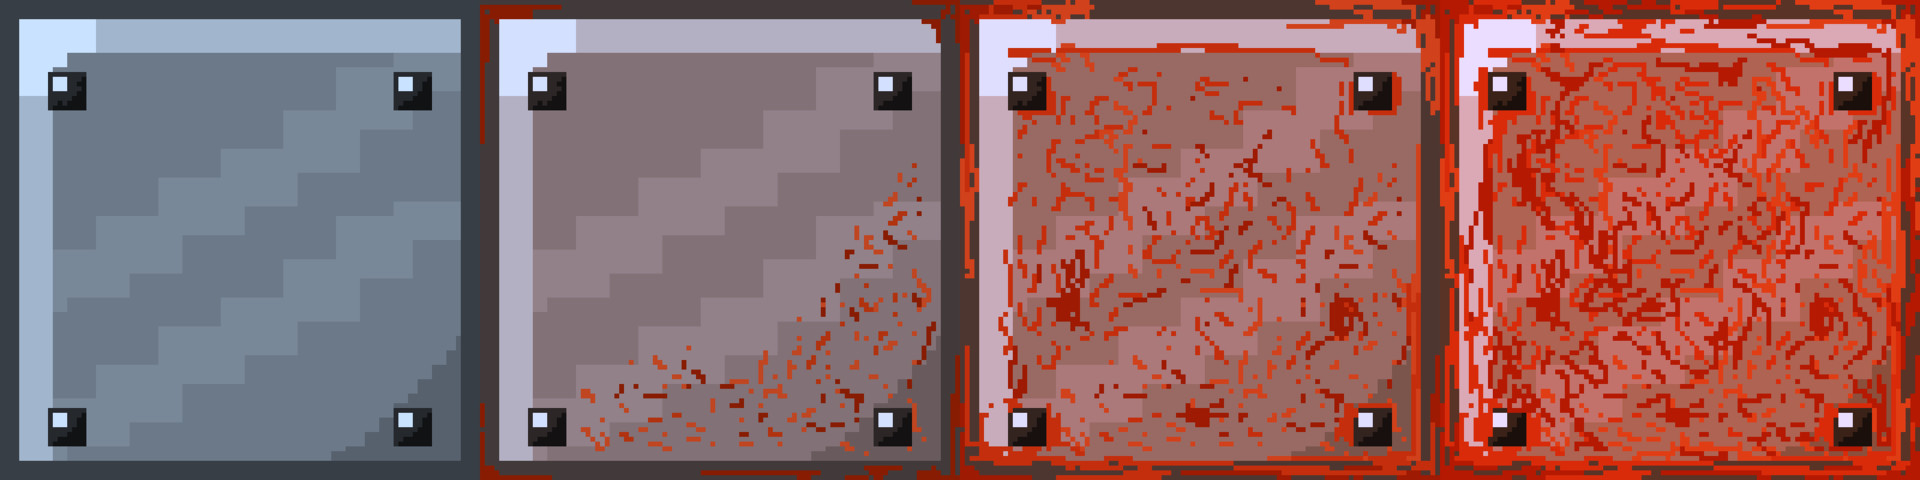 Metal tiles used for the randomly generated stages ranging from clean to totally rusted.